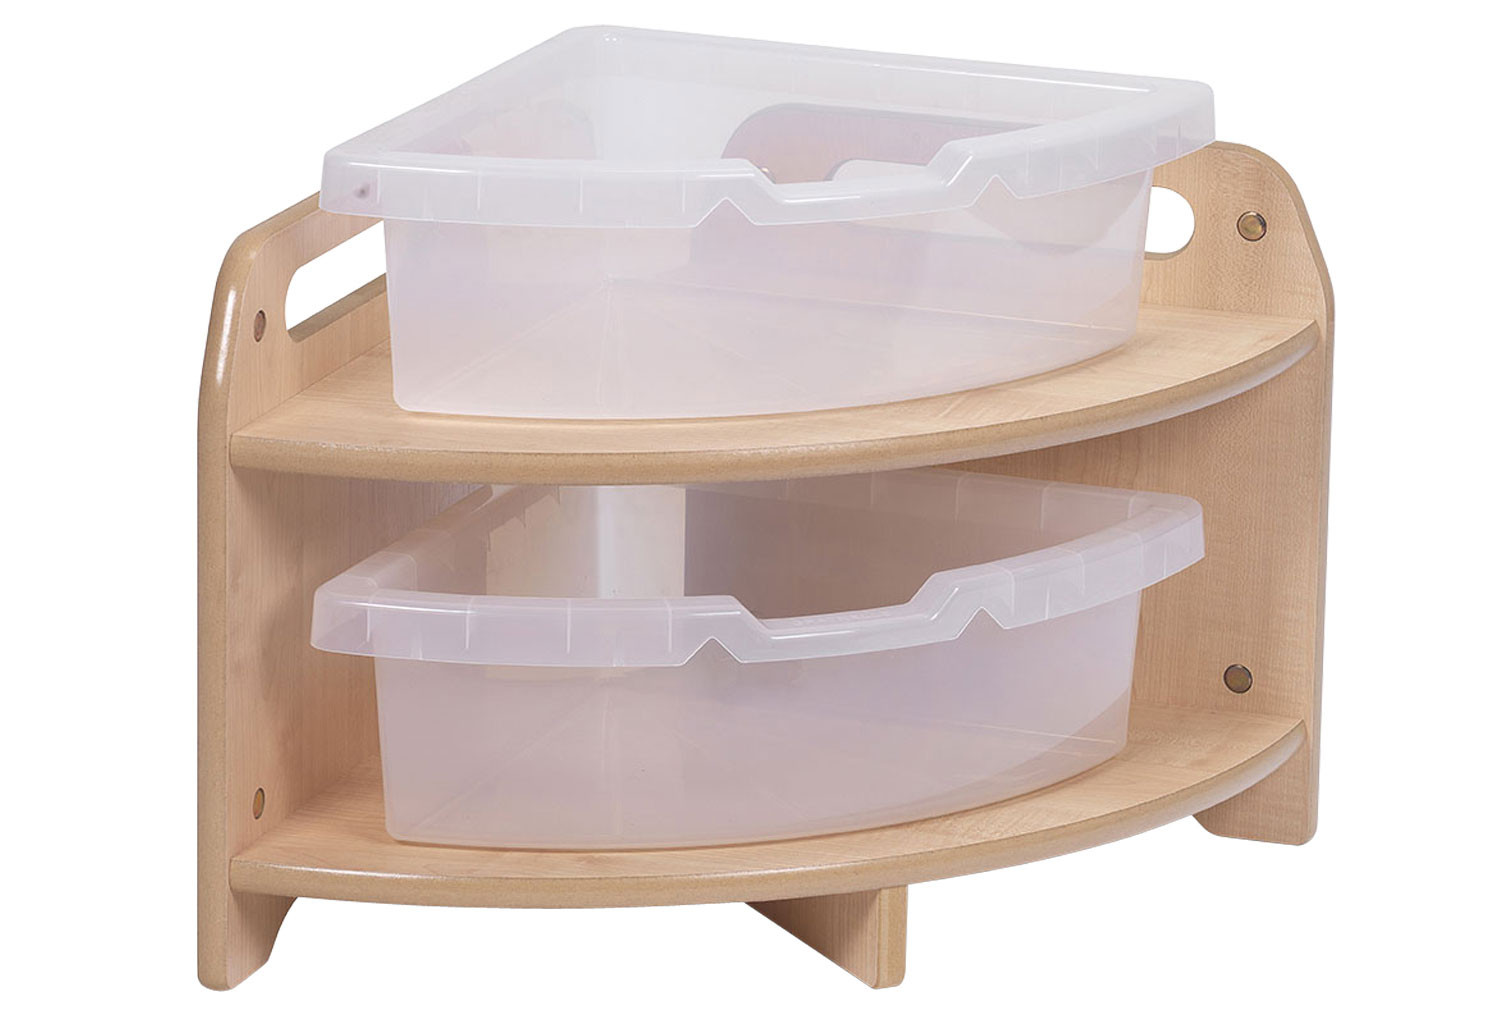 Playscapes Low Level 90 Degree Corner Unit With 2 Clear Tubs